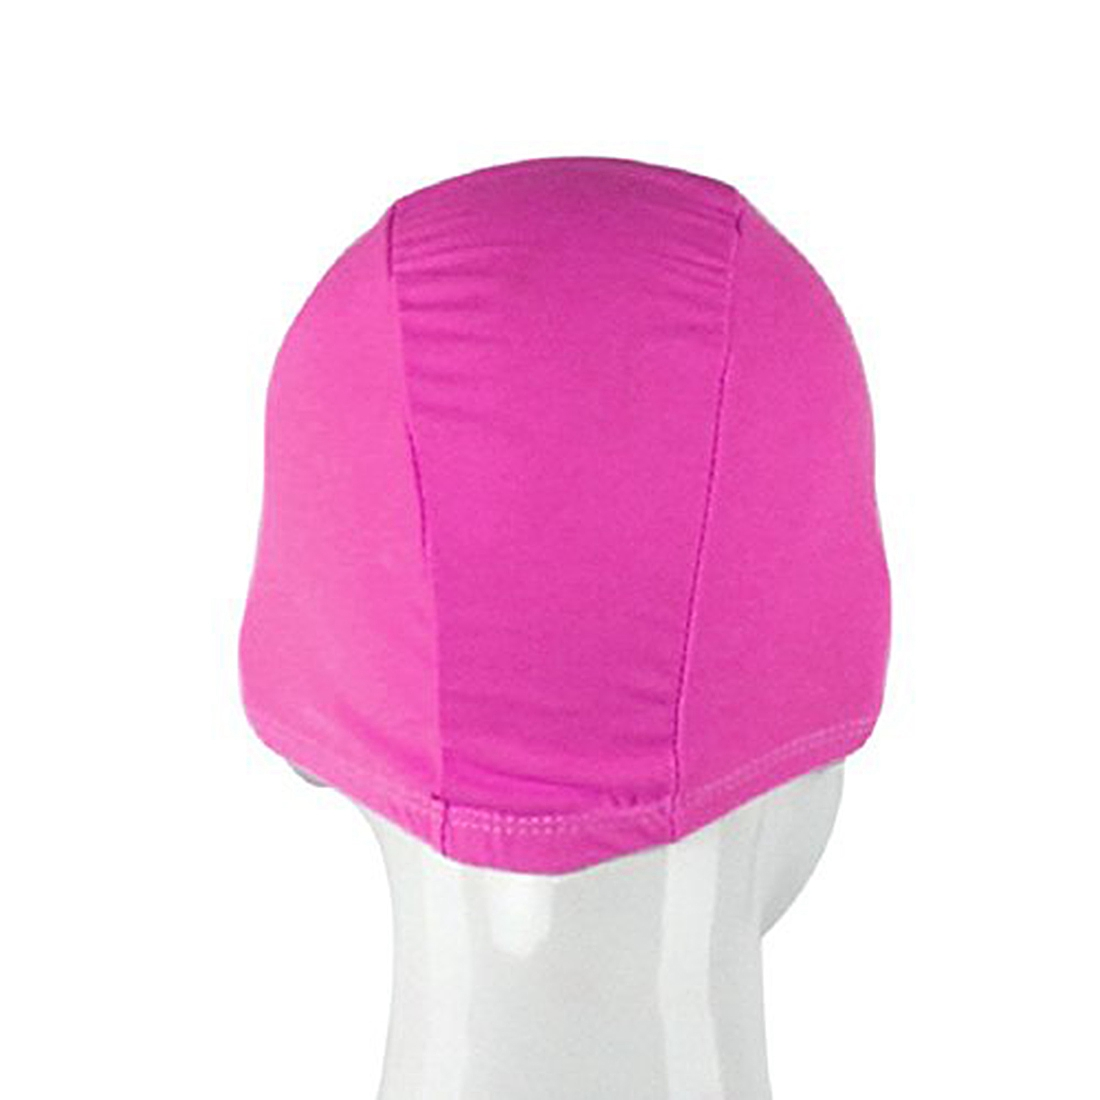 For Adult Swimming Hats Unisex Outdoor Sports Stretch Cap Rose red Karachi